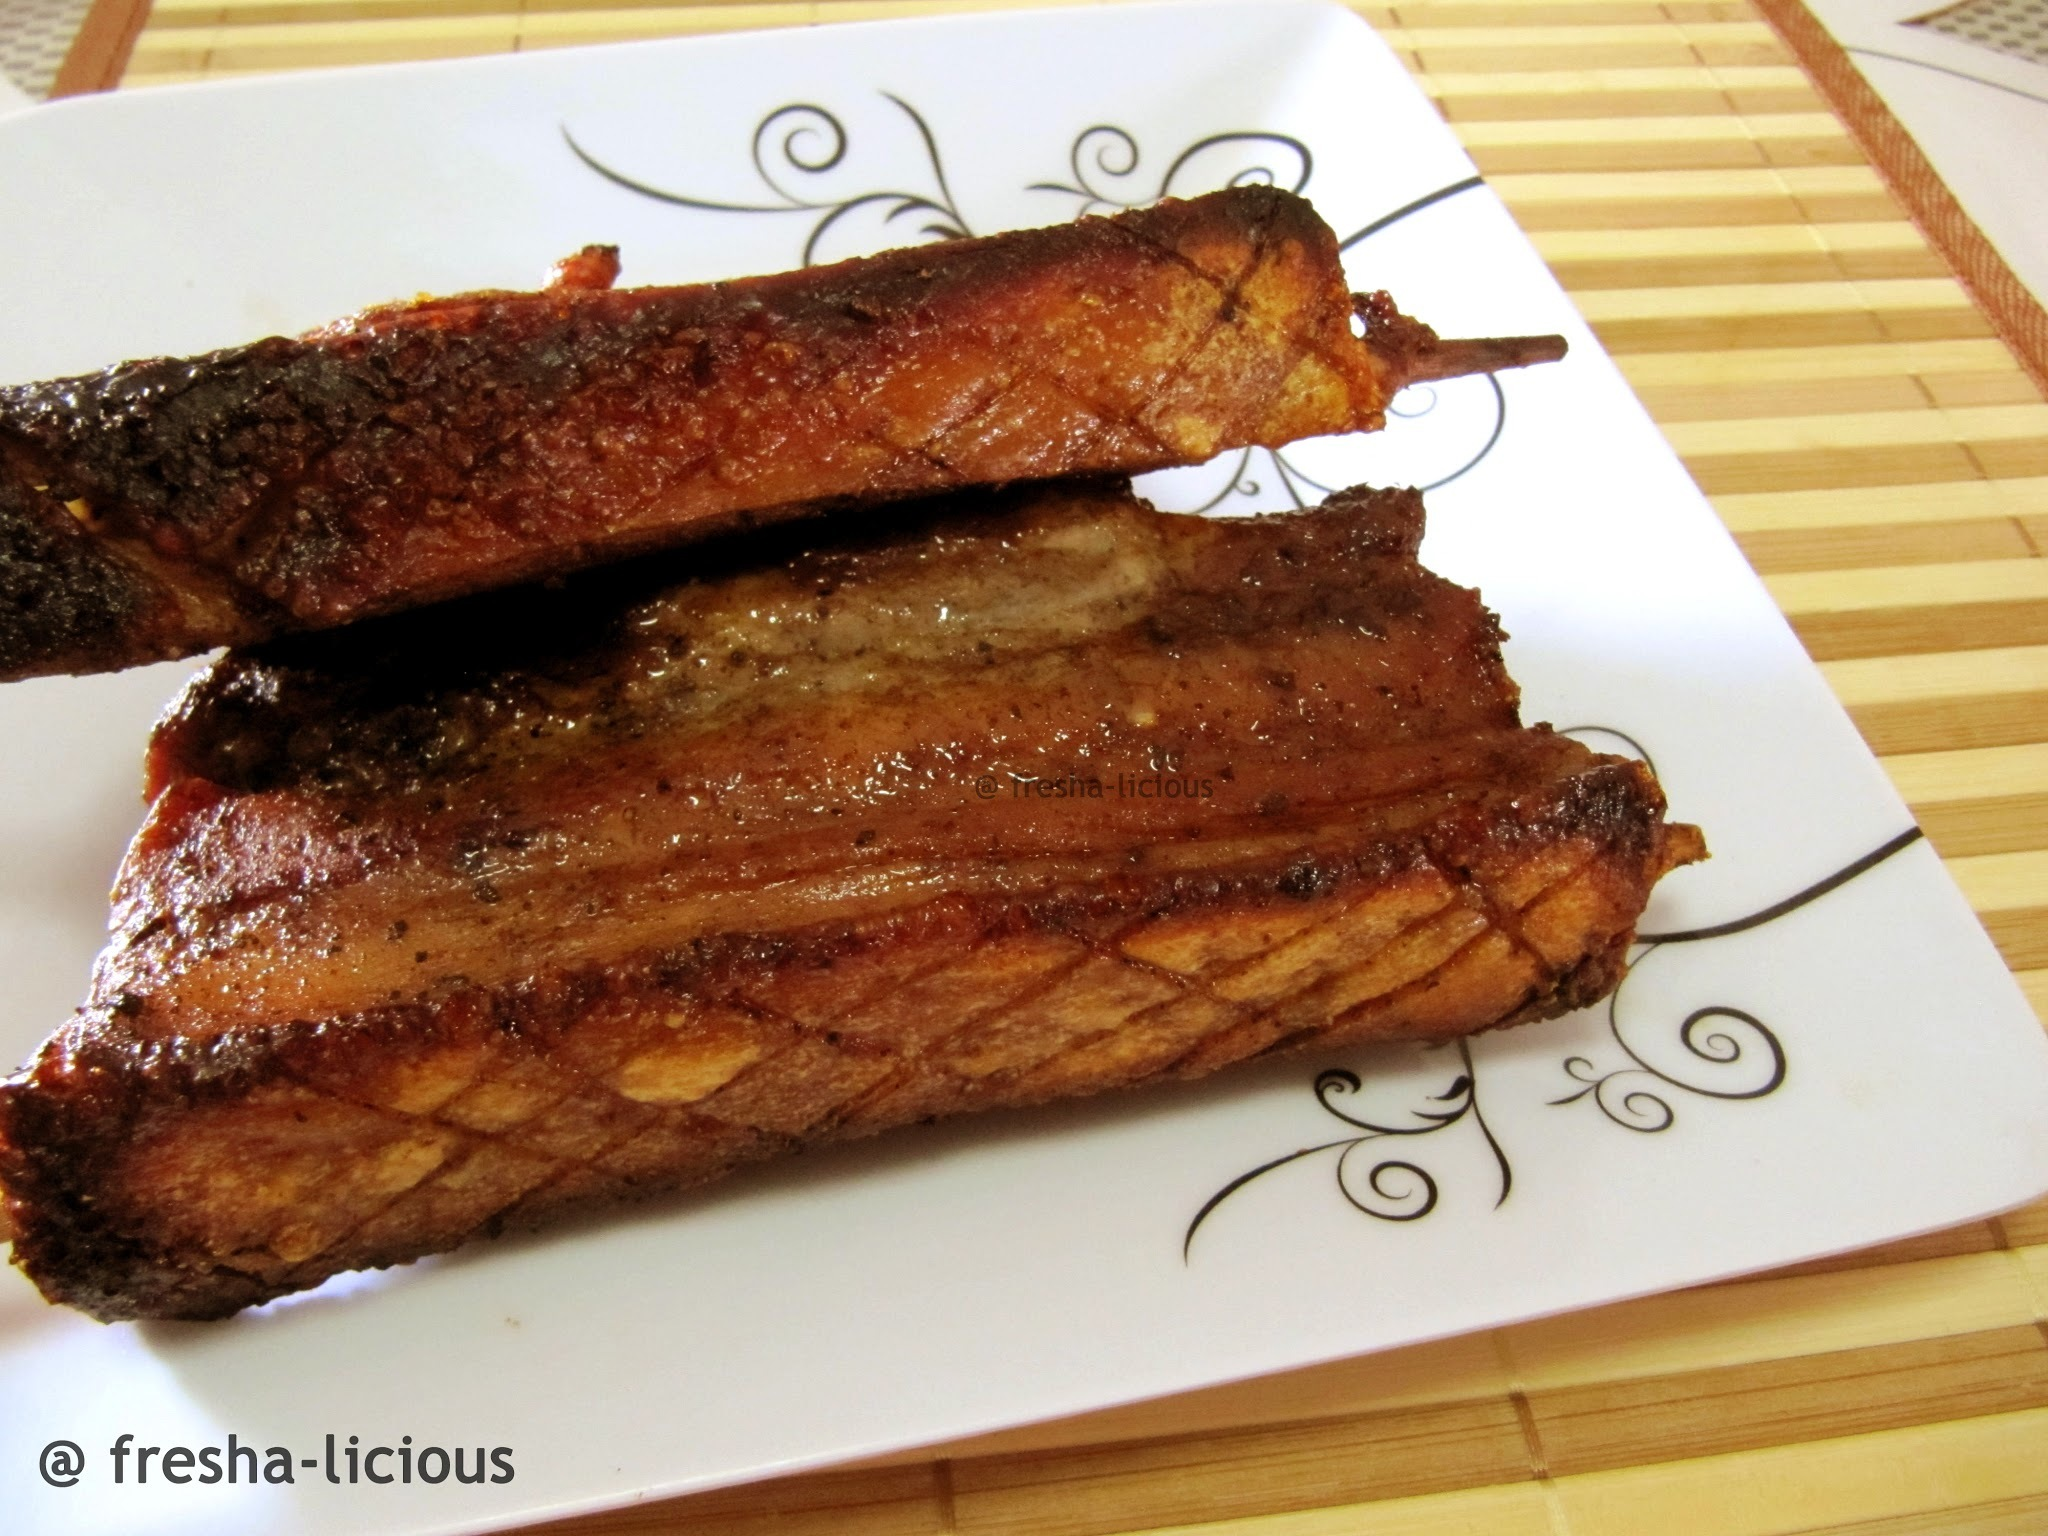 Sio Bak (Chinese's Roasted Pork Belly)